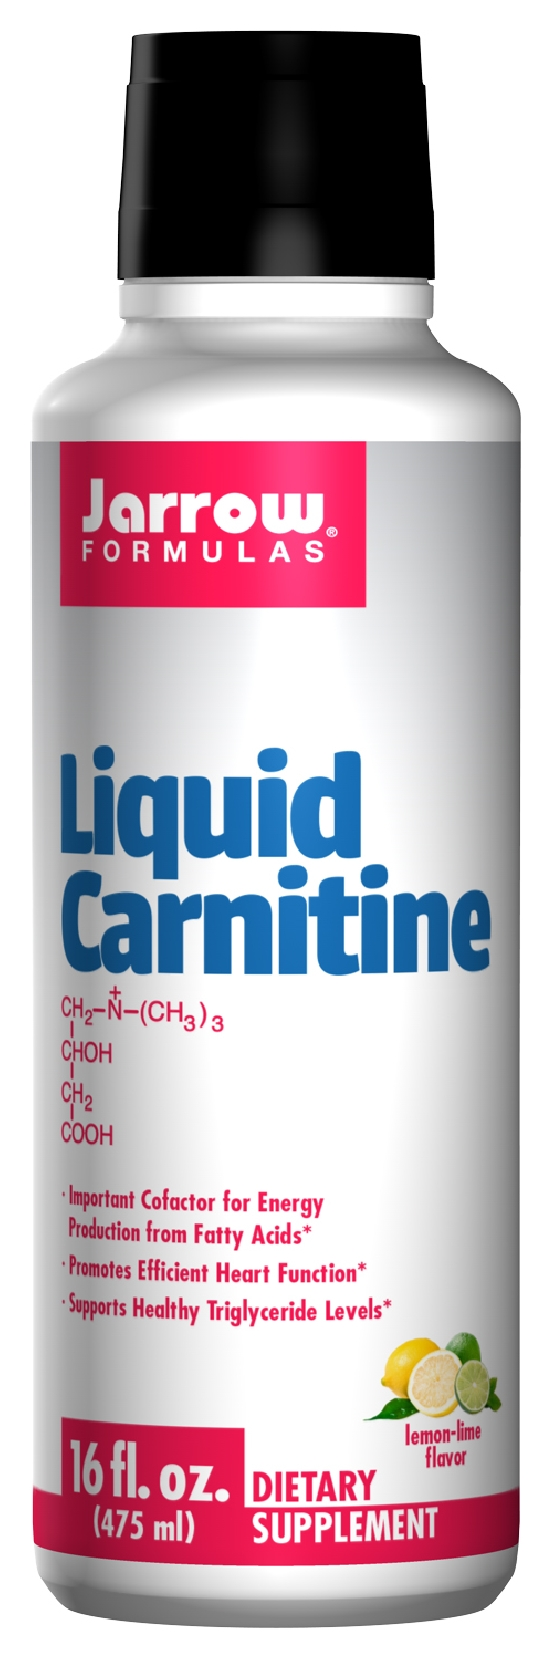 Liquid Carnitine 1000 16 fl oz (475 ml) by Jarrow Formulas